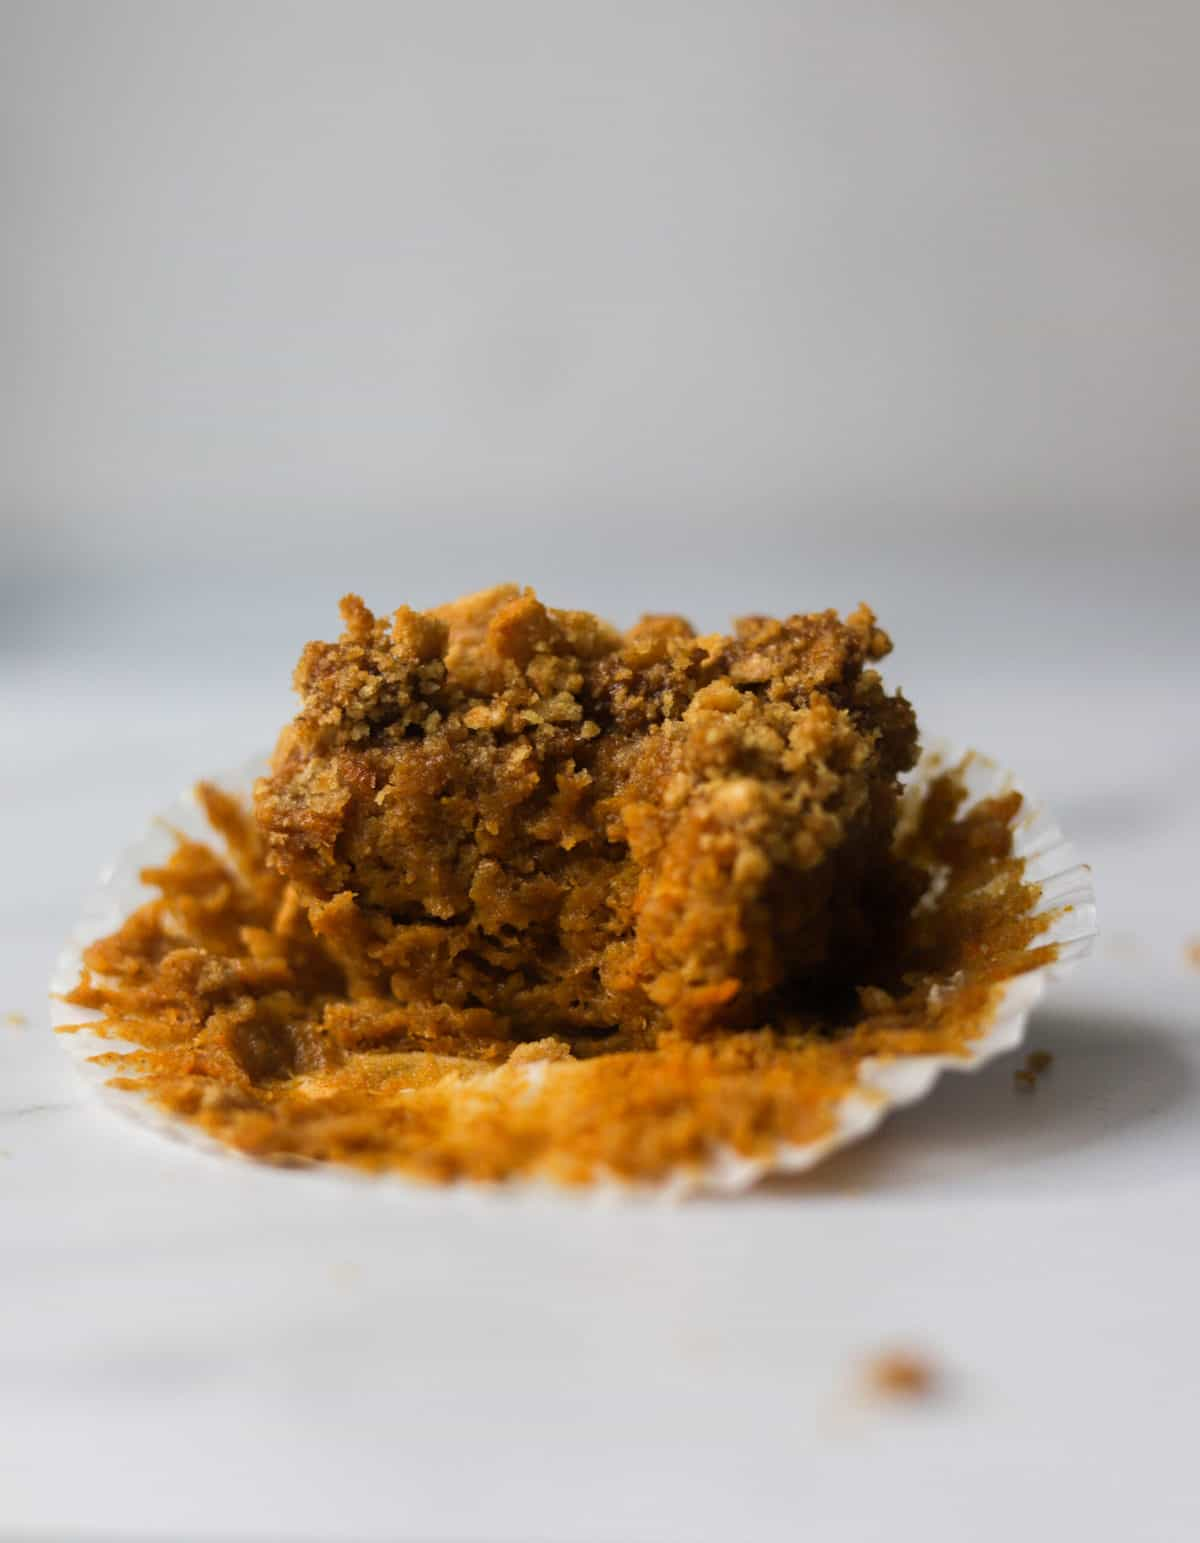 A side shot of a sweet potato muffin with a bite missing.